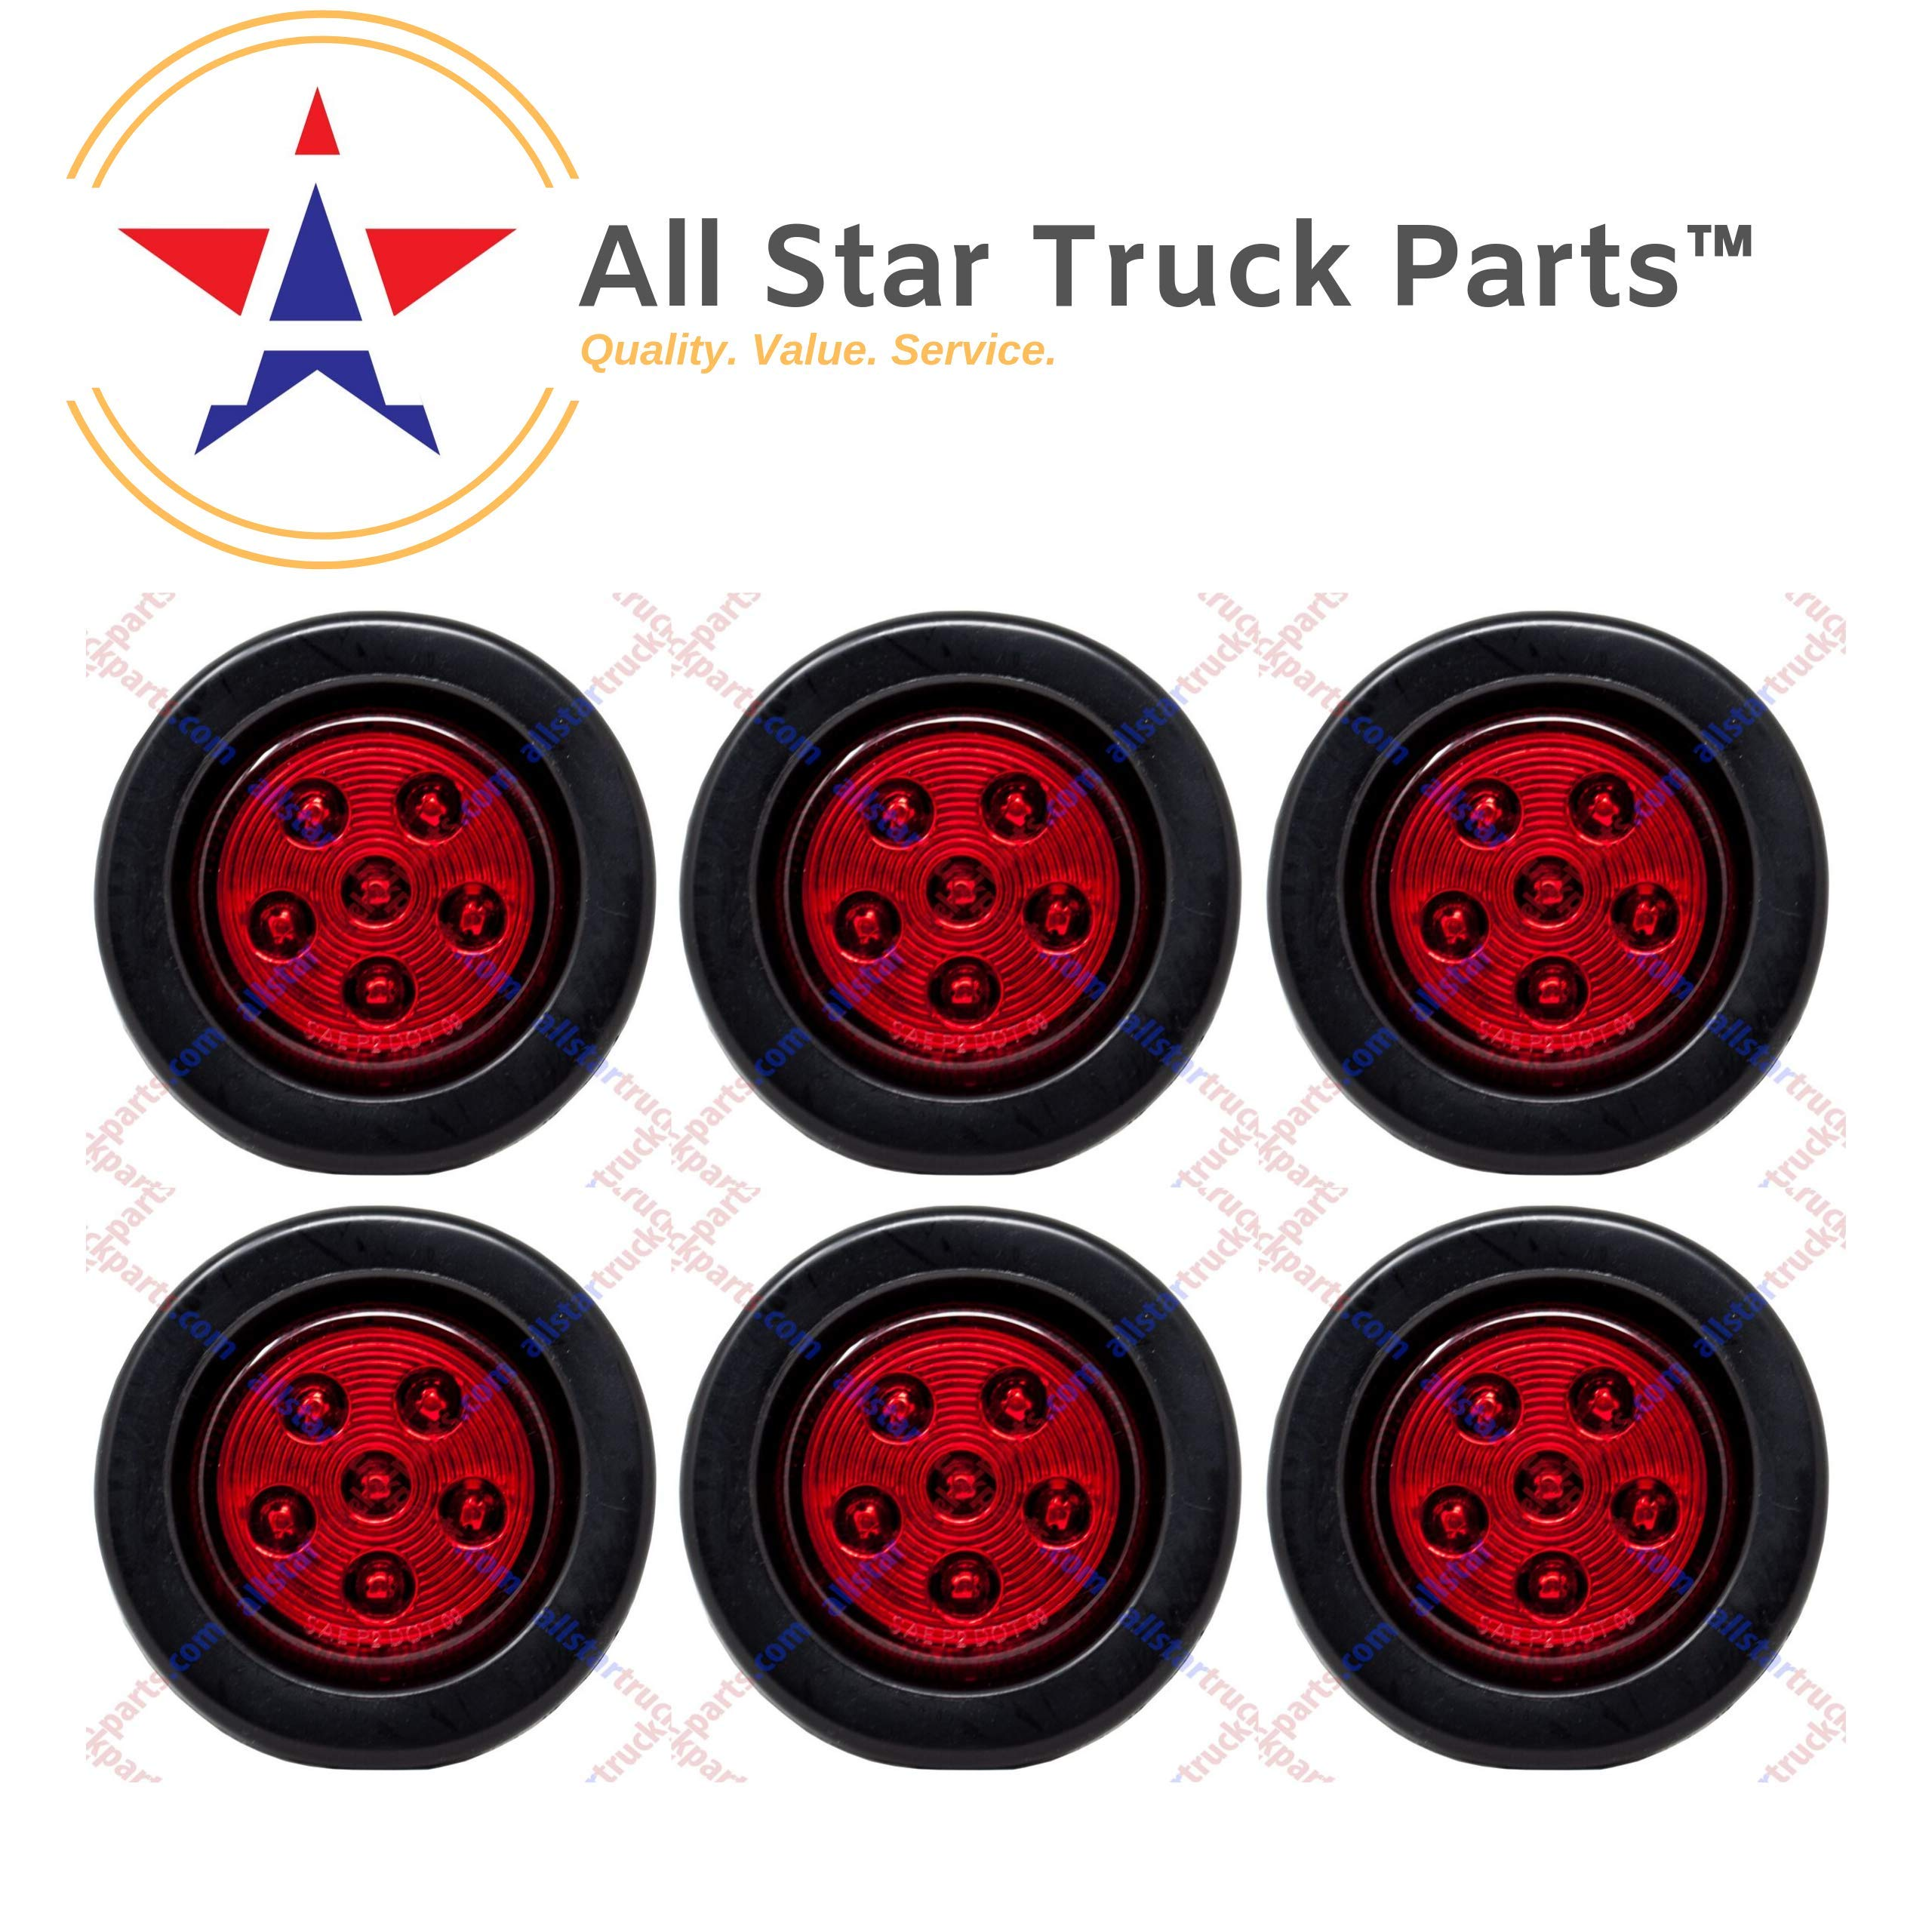 Qty 6-2.5'' Round 6 LED Red Light Truck Trailer Side Marker Clearance Grommet and 2 Wire Pigtail Plug Kit by All Star Truck Parts